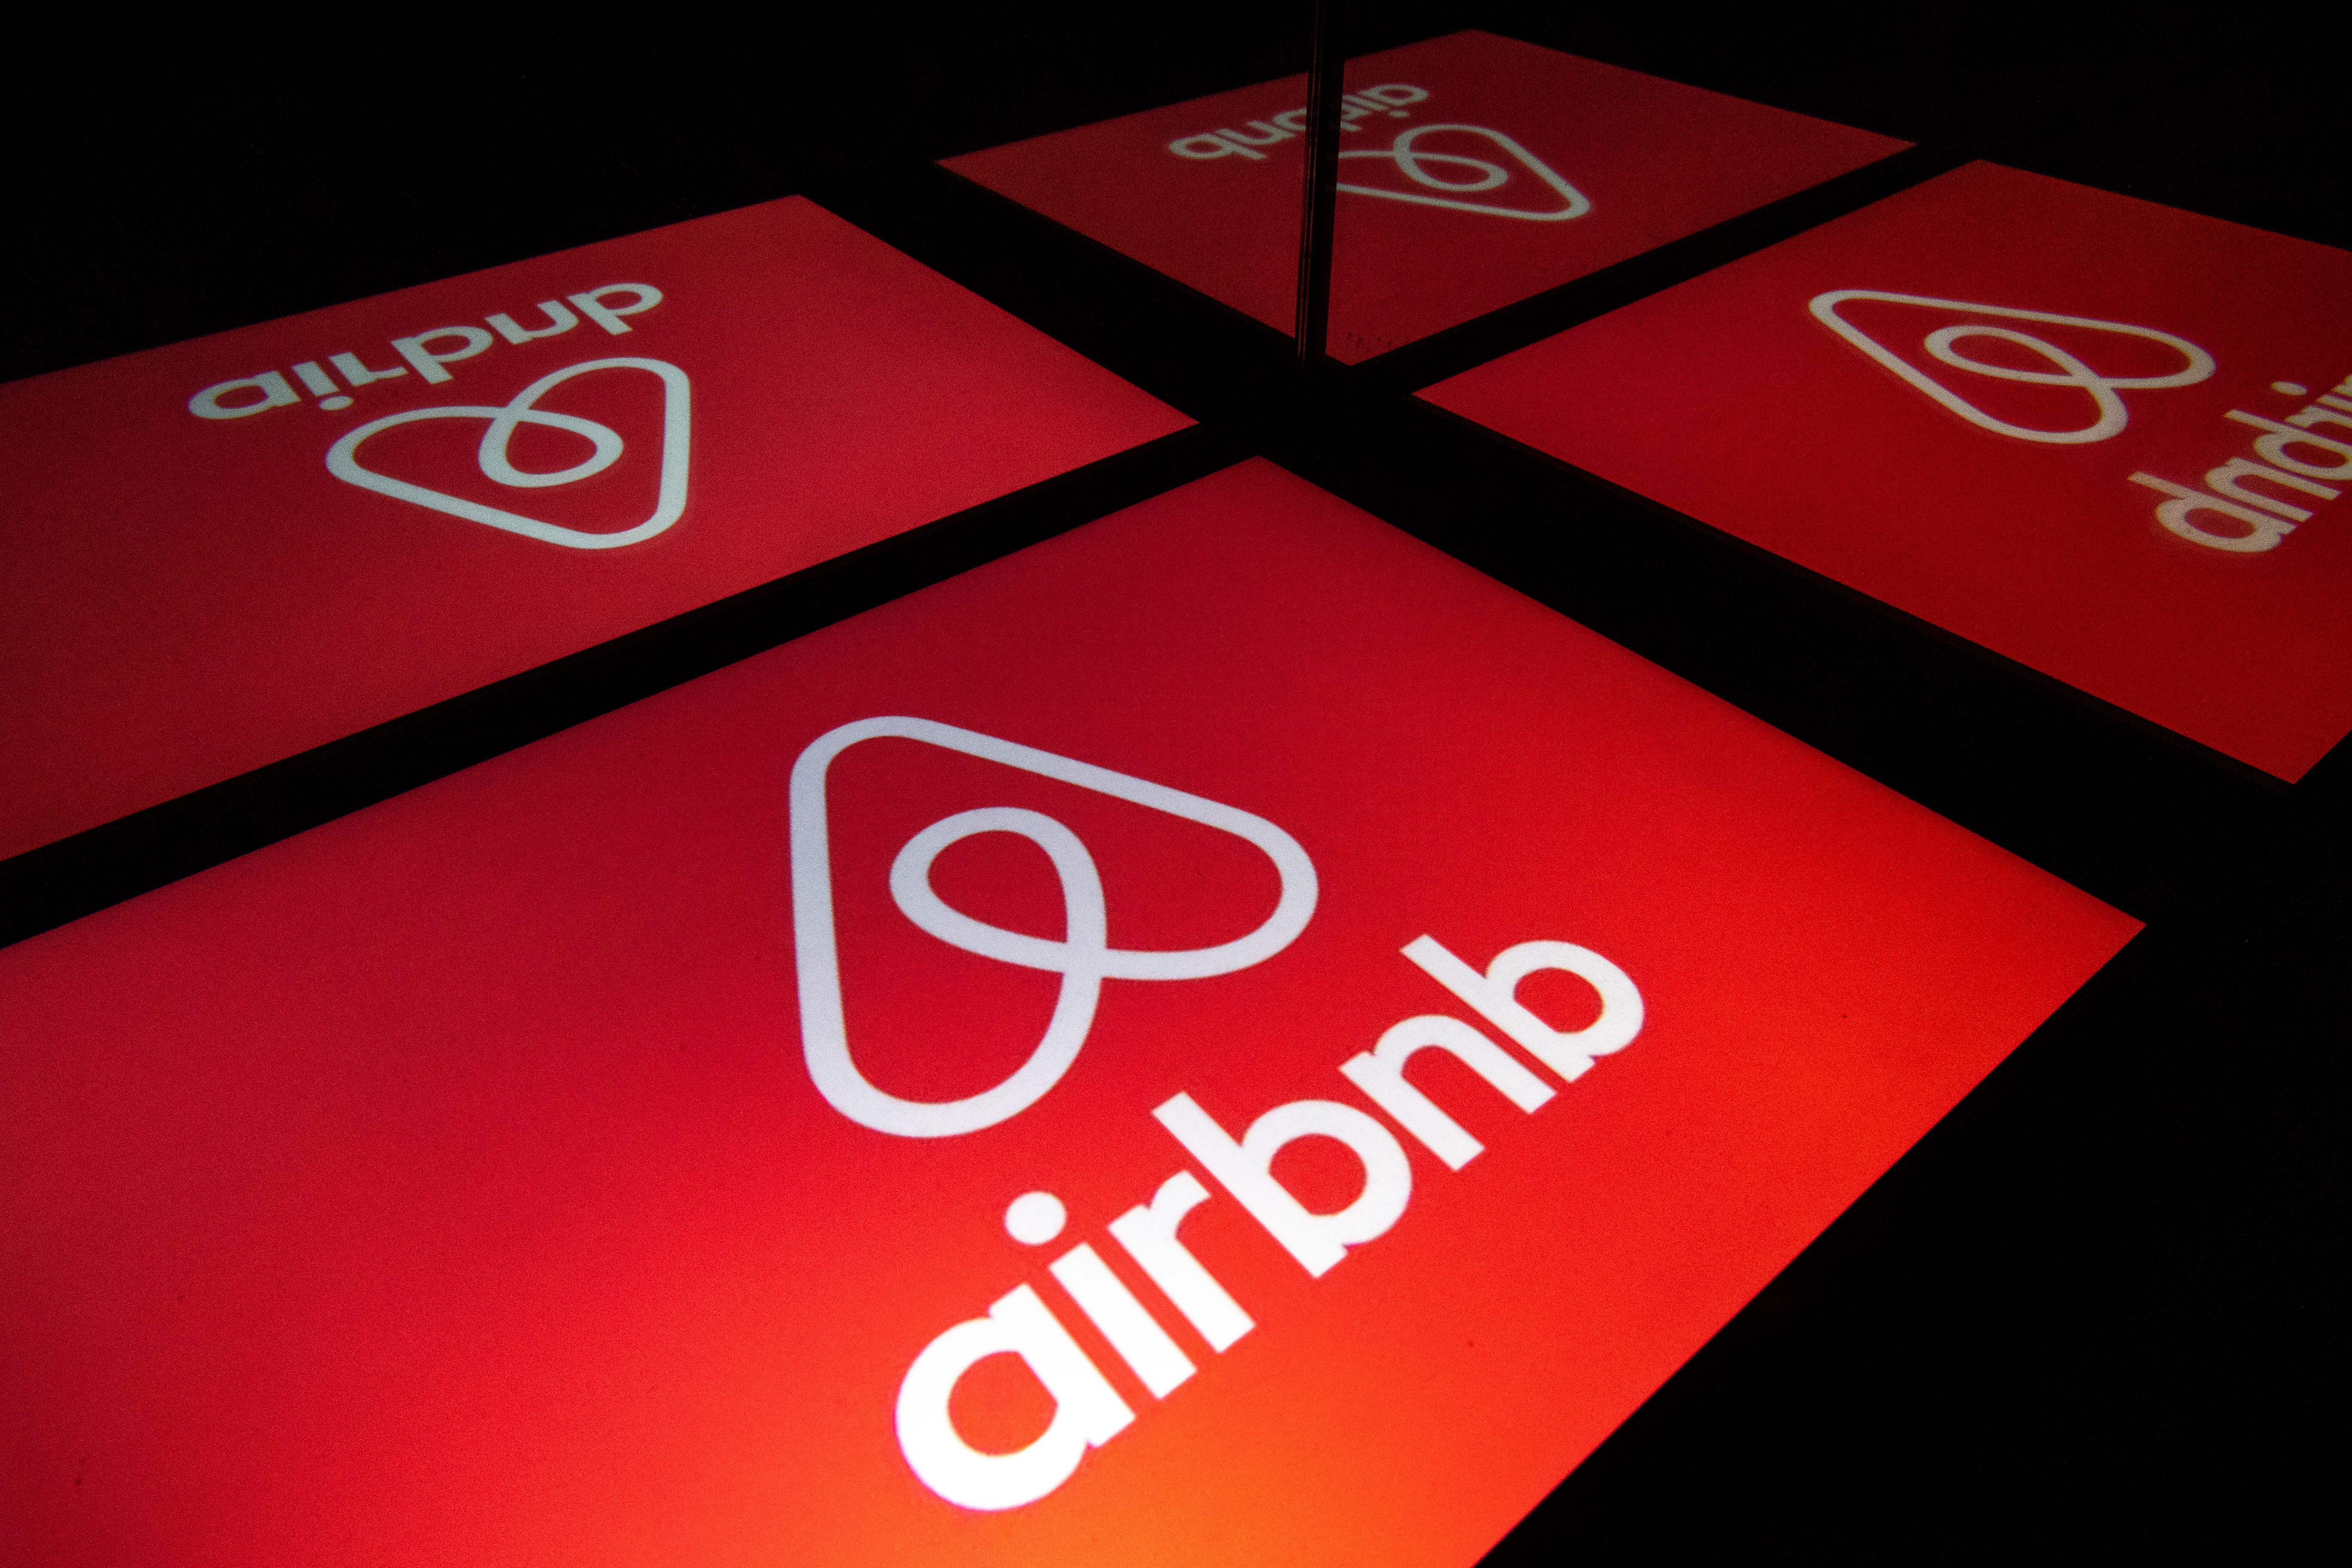 After Uber, Airbnb faces crucial ruling in top EU court.